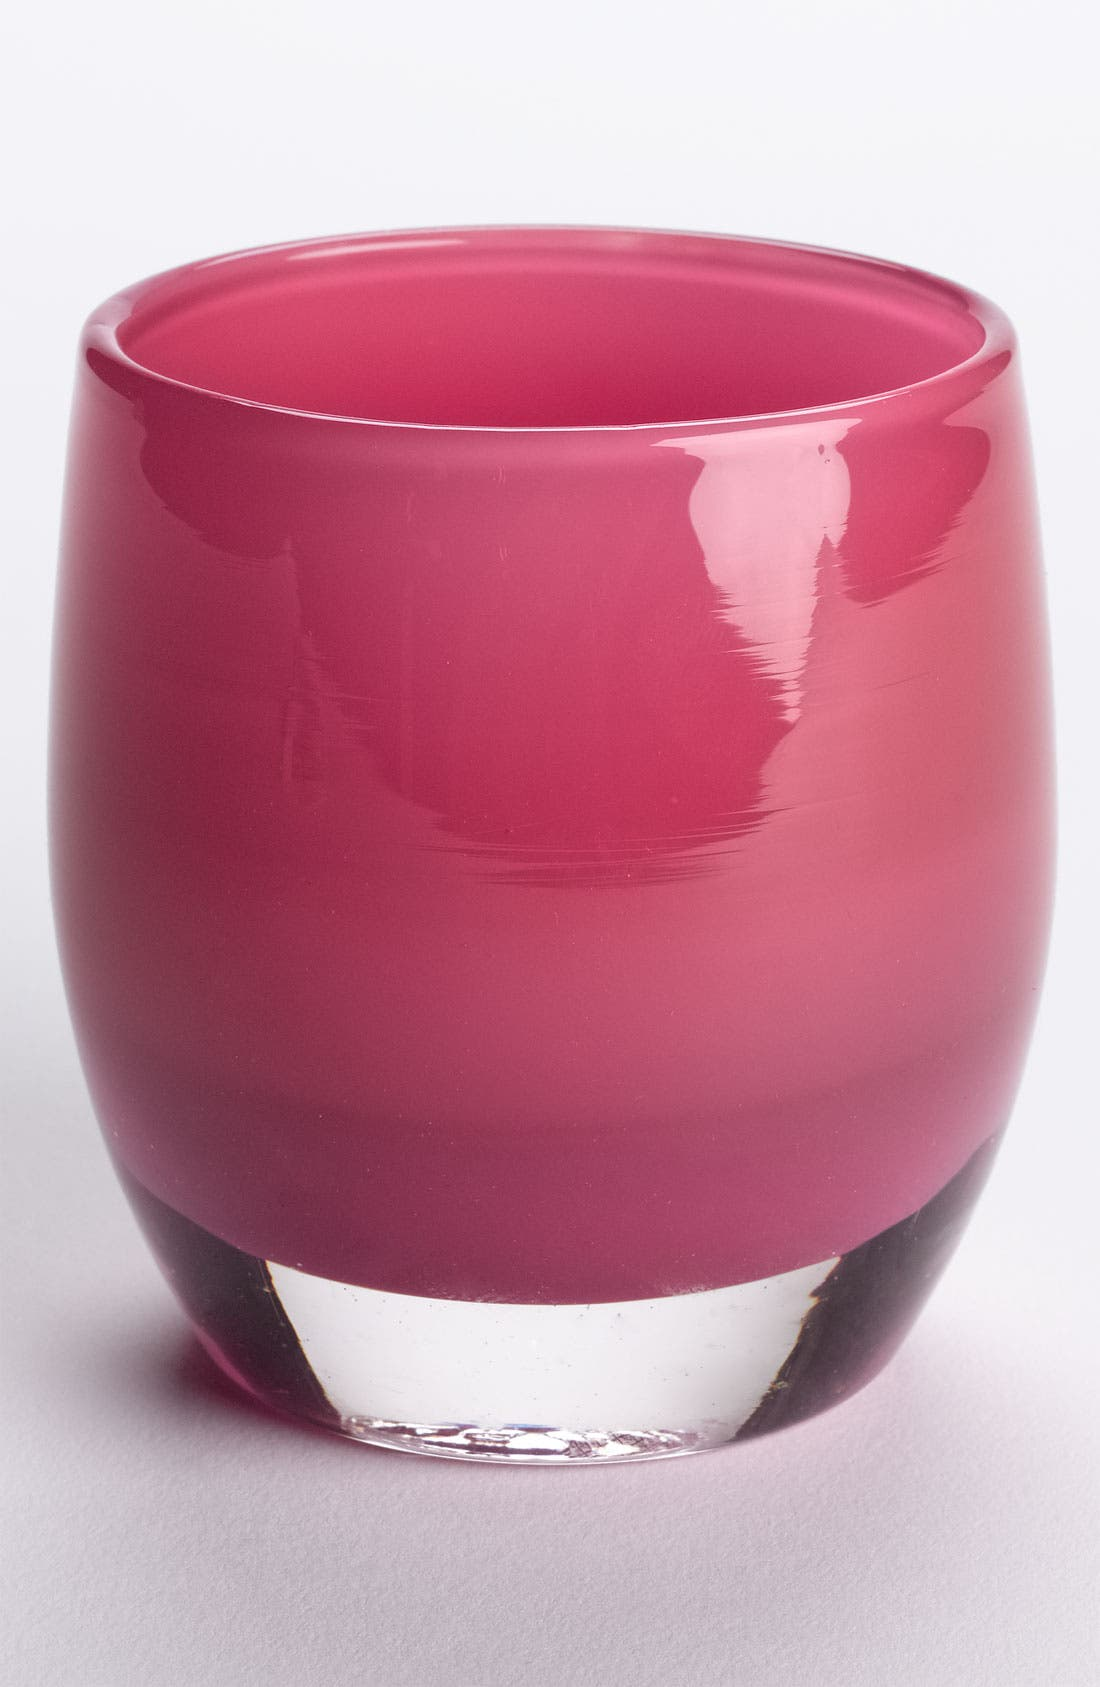 Alternate Image 1 Selected - glassybaby 'Evelyn' Candle Holder (Nordstrom Exclusive)